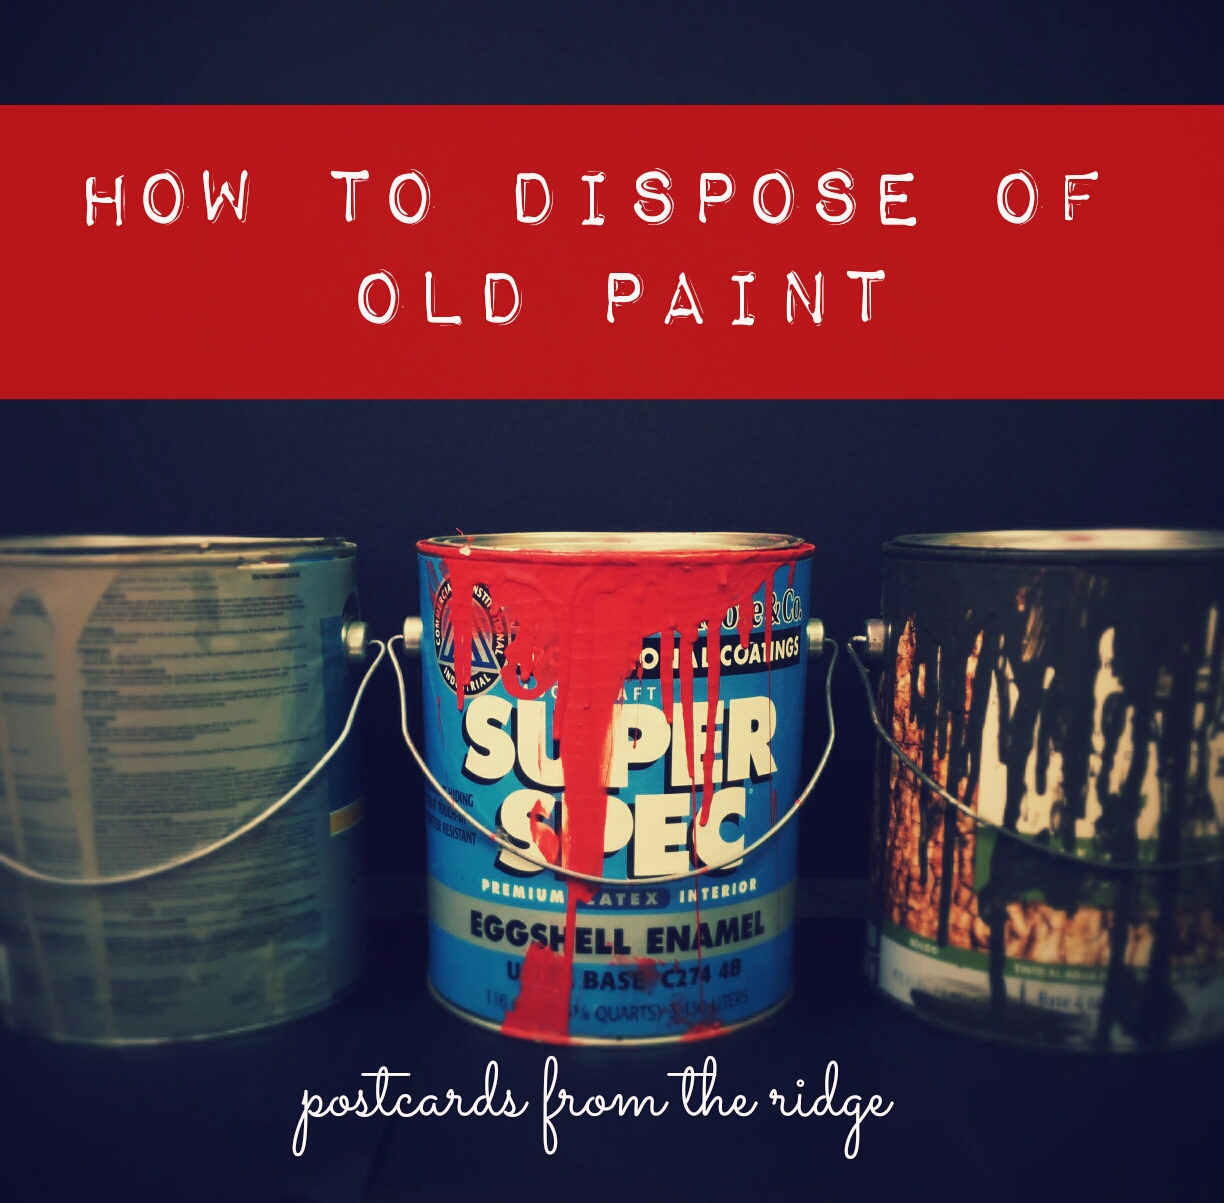 Disposal of old paint and hazardous household material